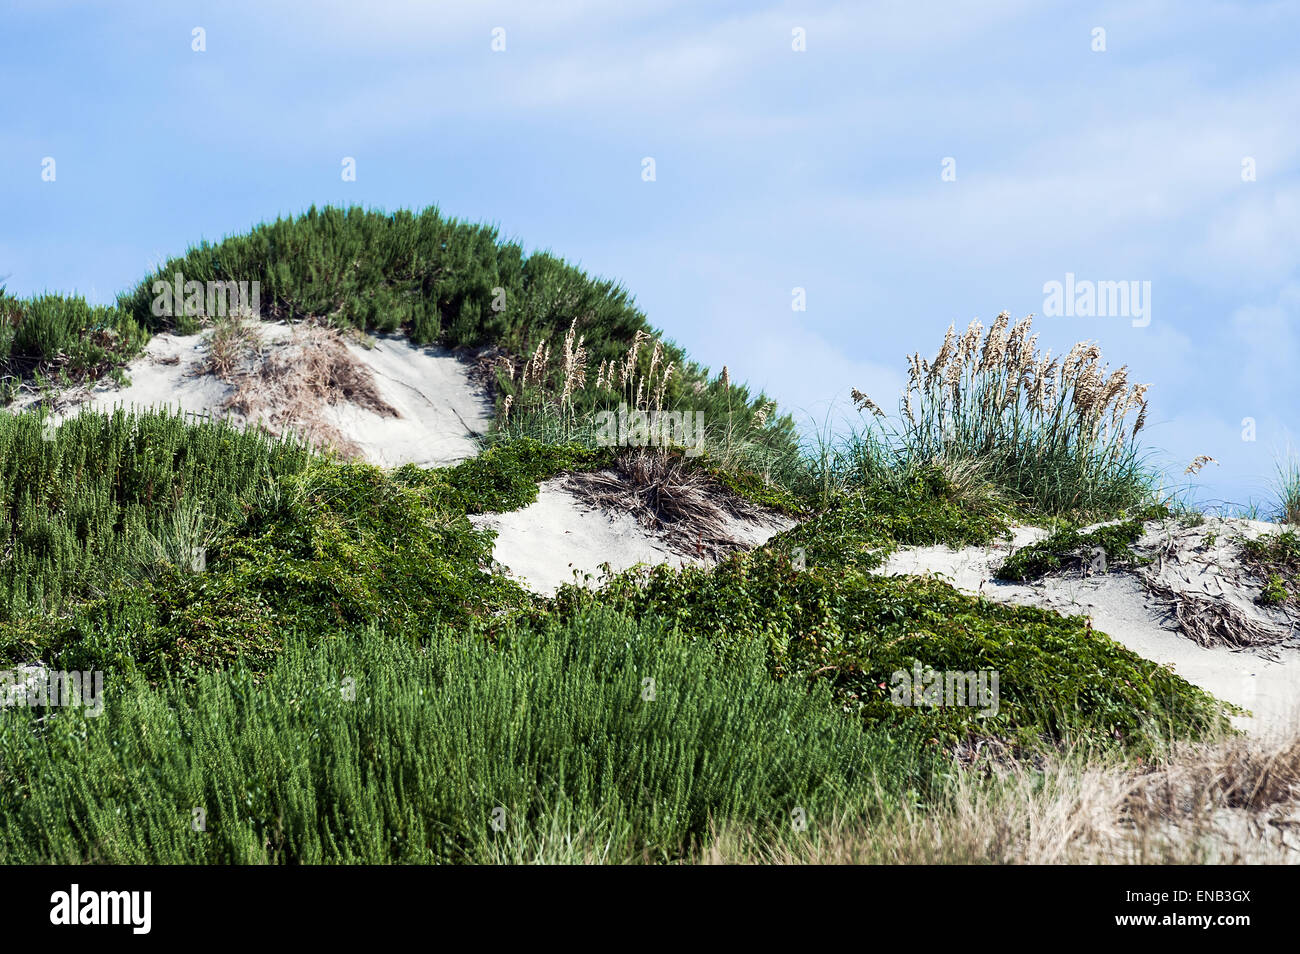 Dune mound and sea oats, Outer Banks, North Caolina, USA - Stock Image